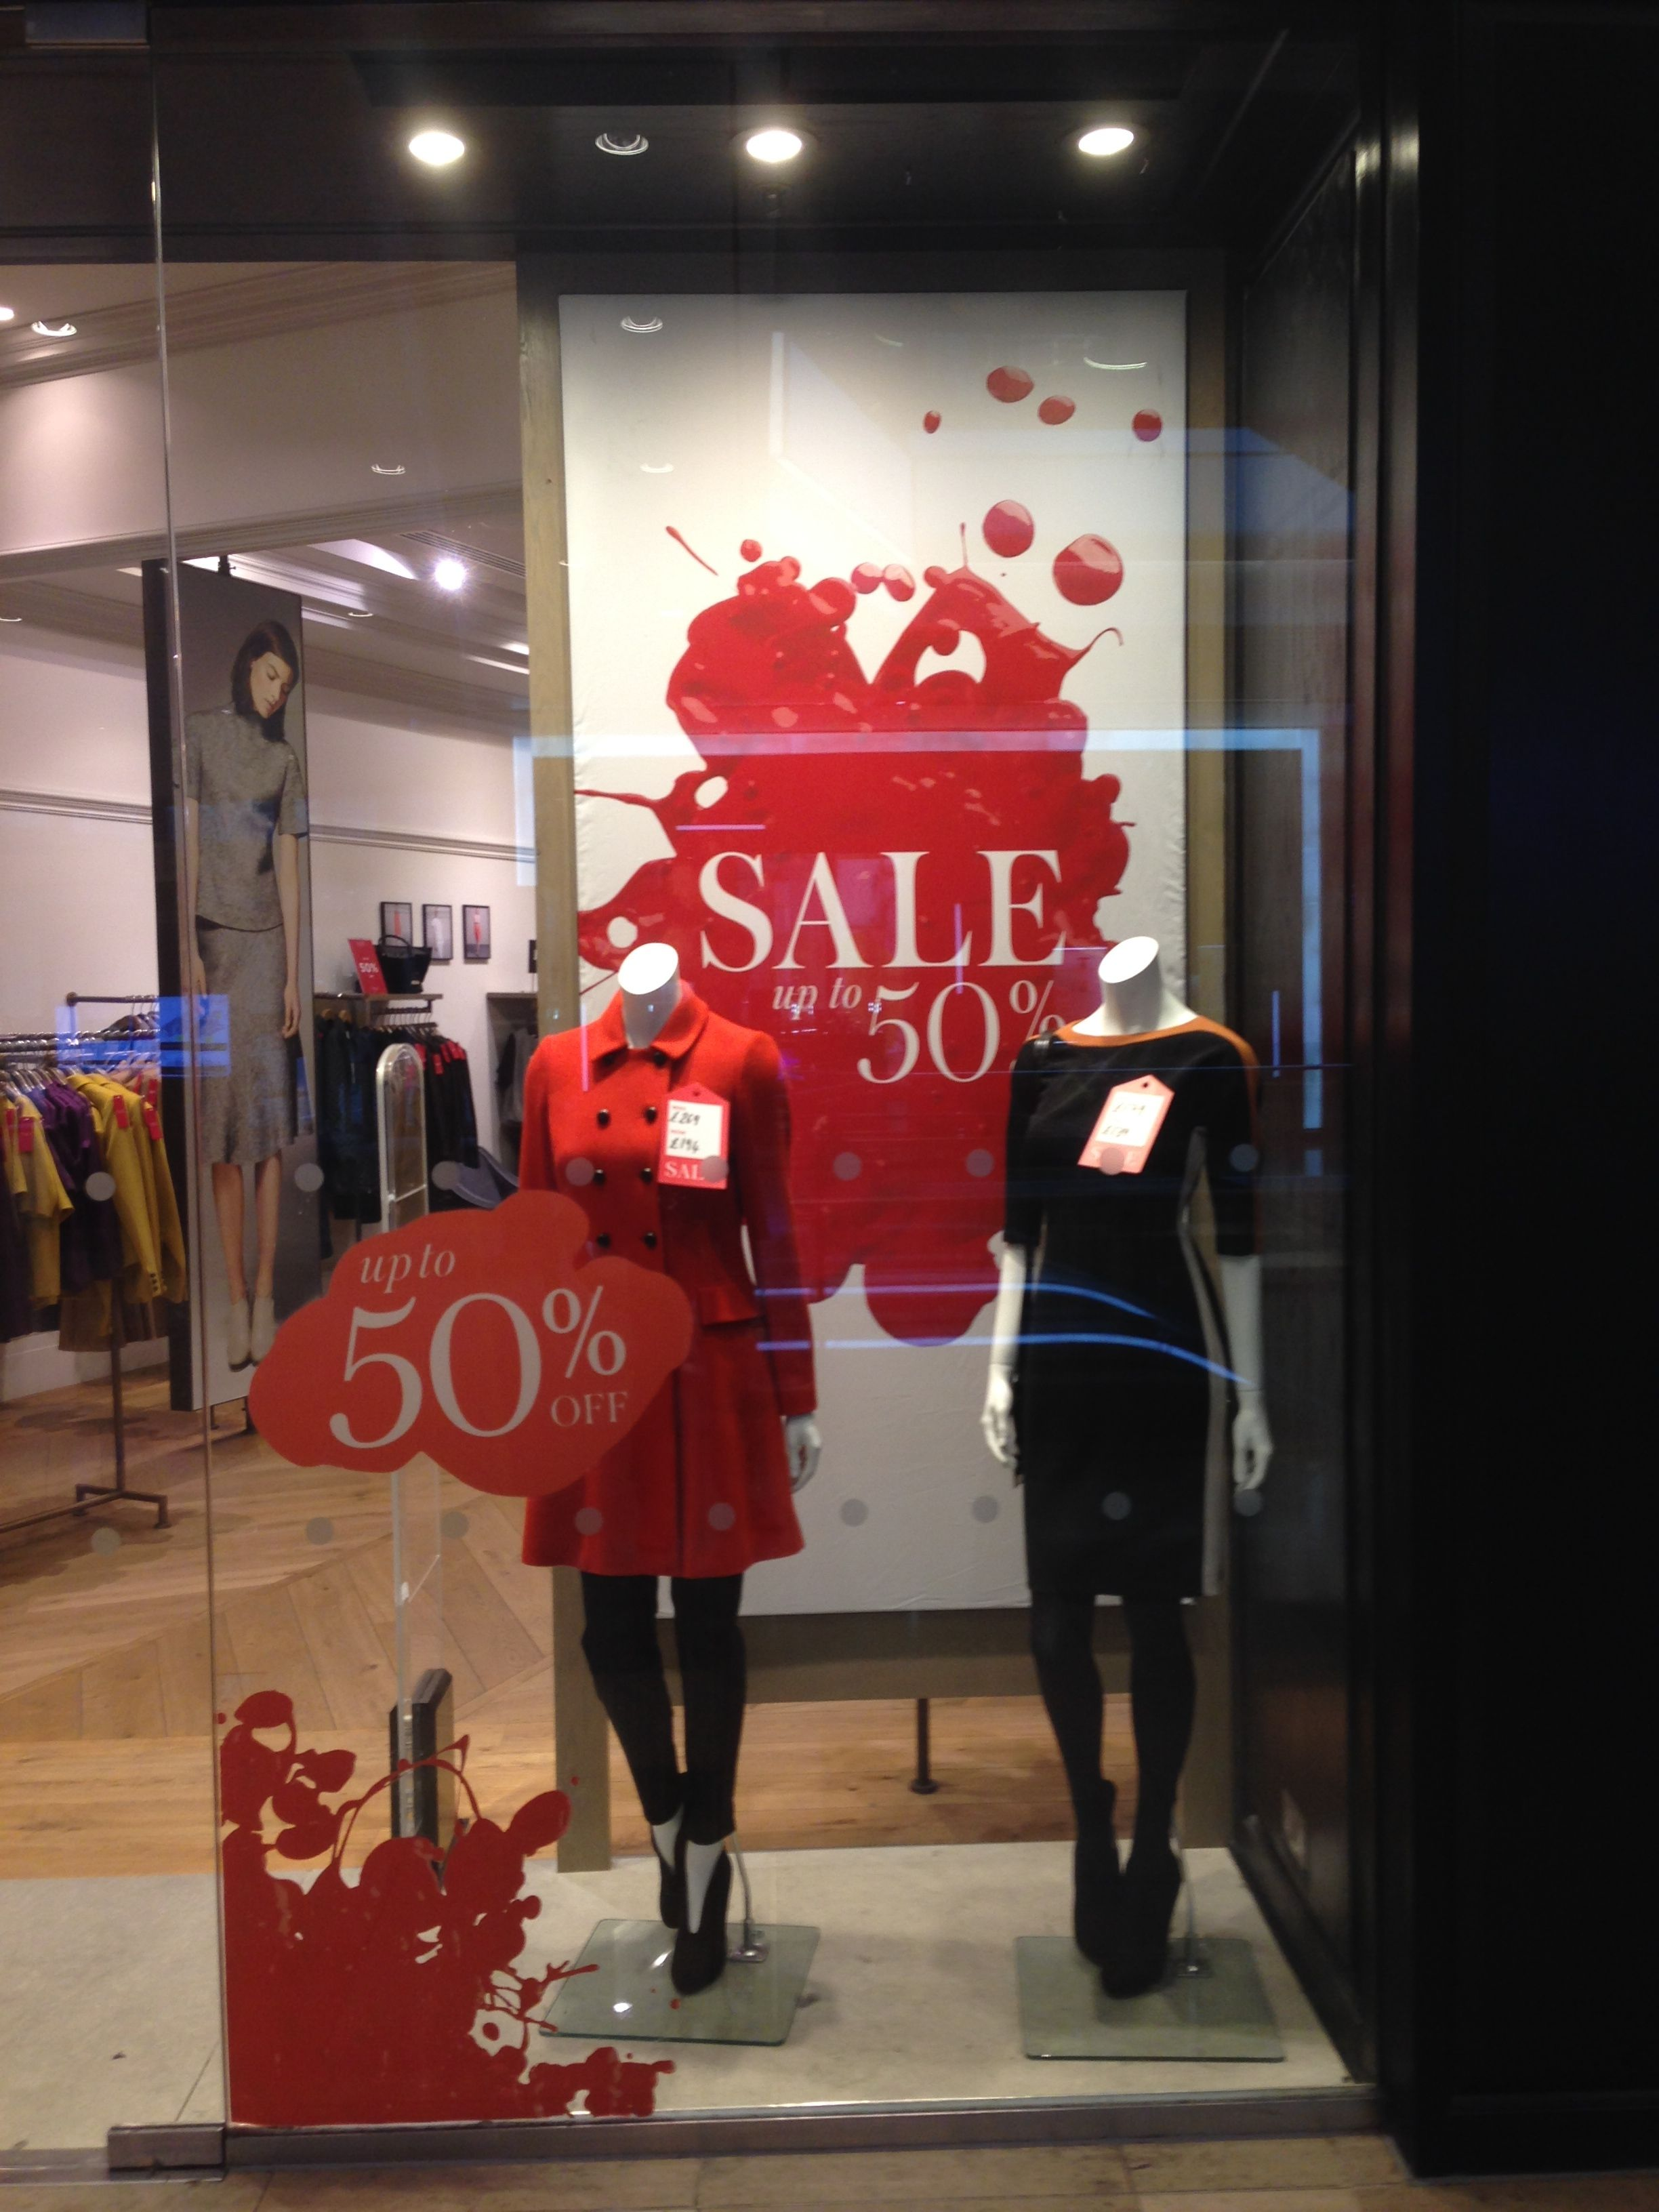 Sale Displays Are Usually So Boring This Is Great Windowdisplay